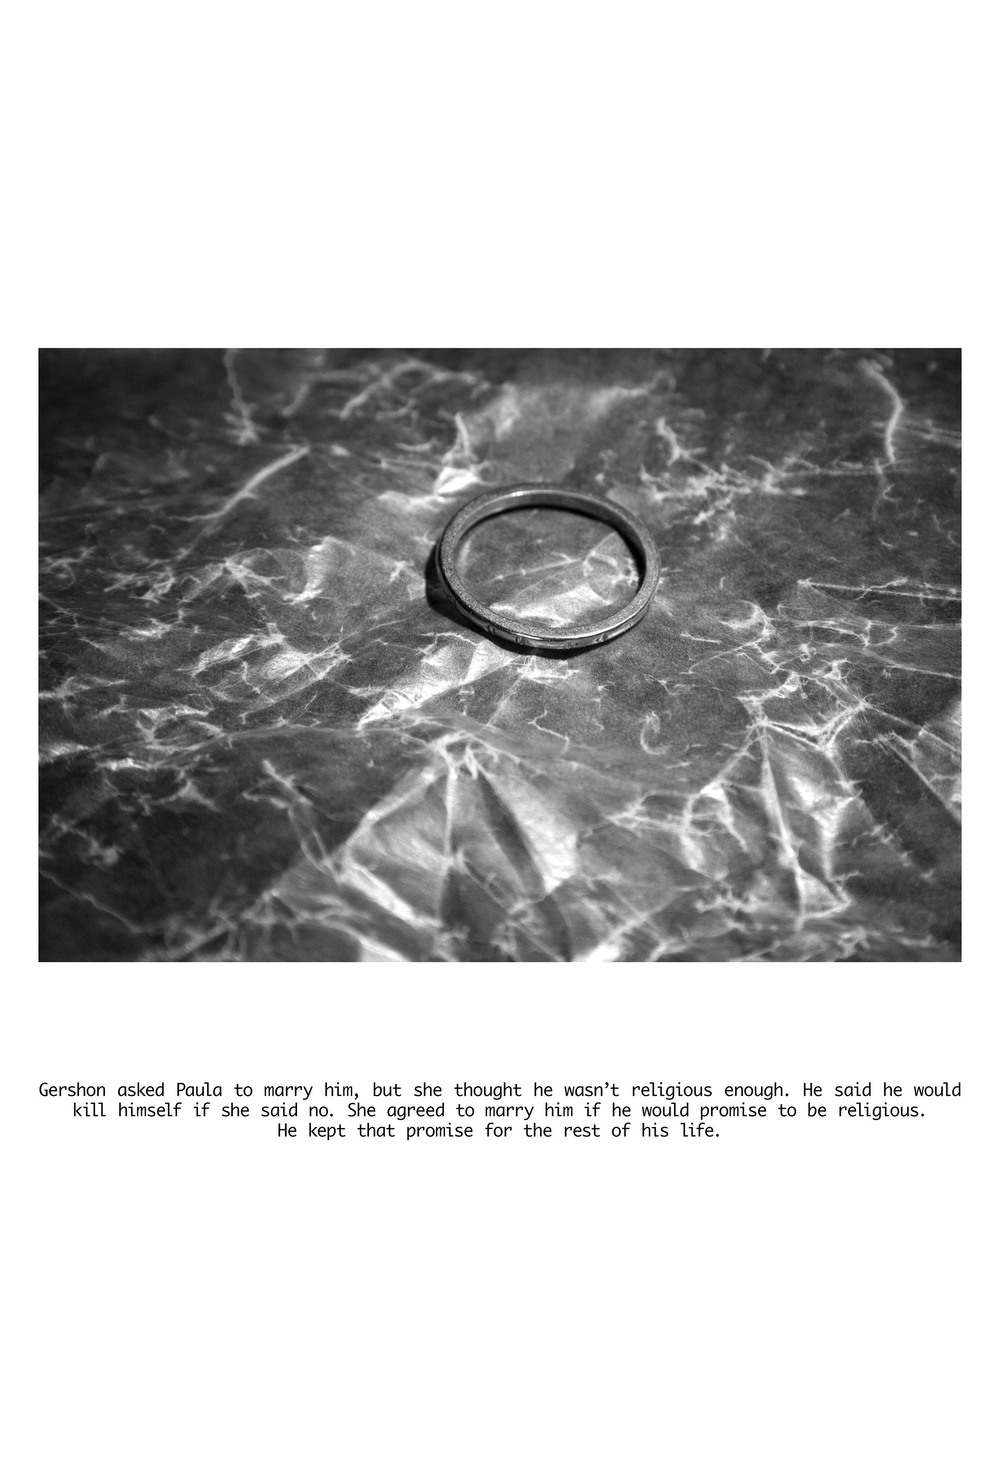 Wedding Ring vertical 13x19.jpg